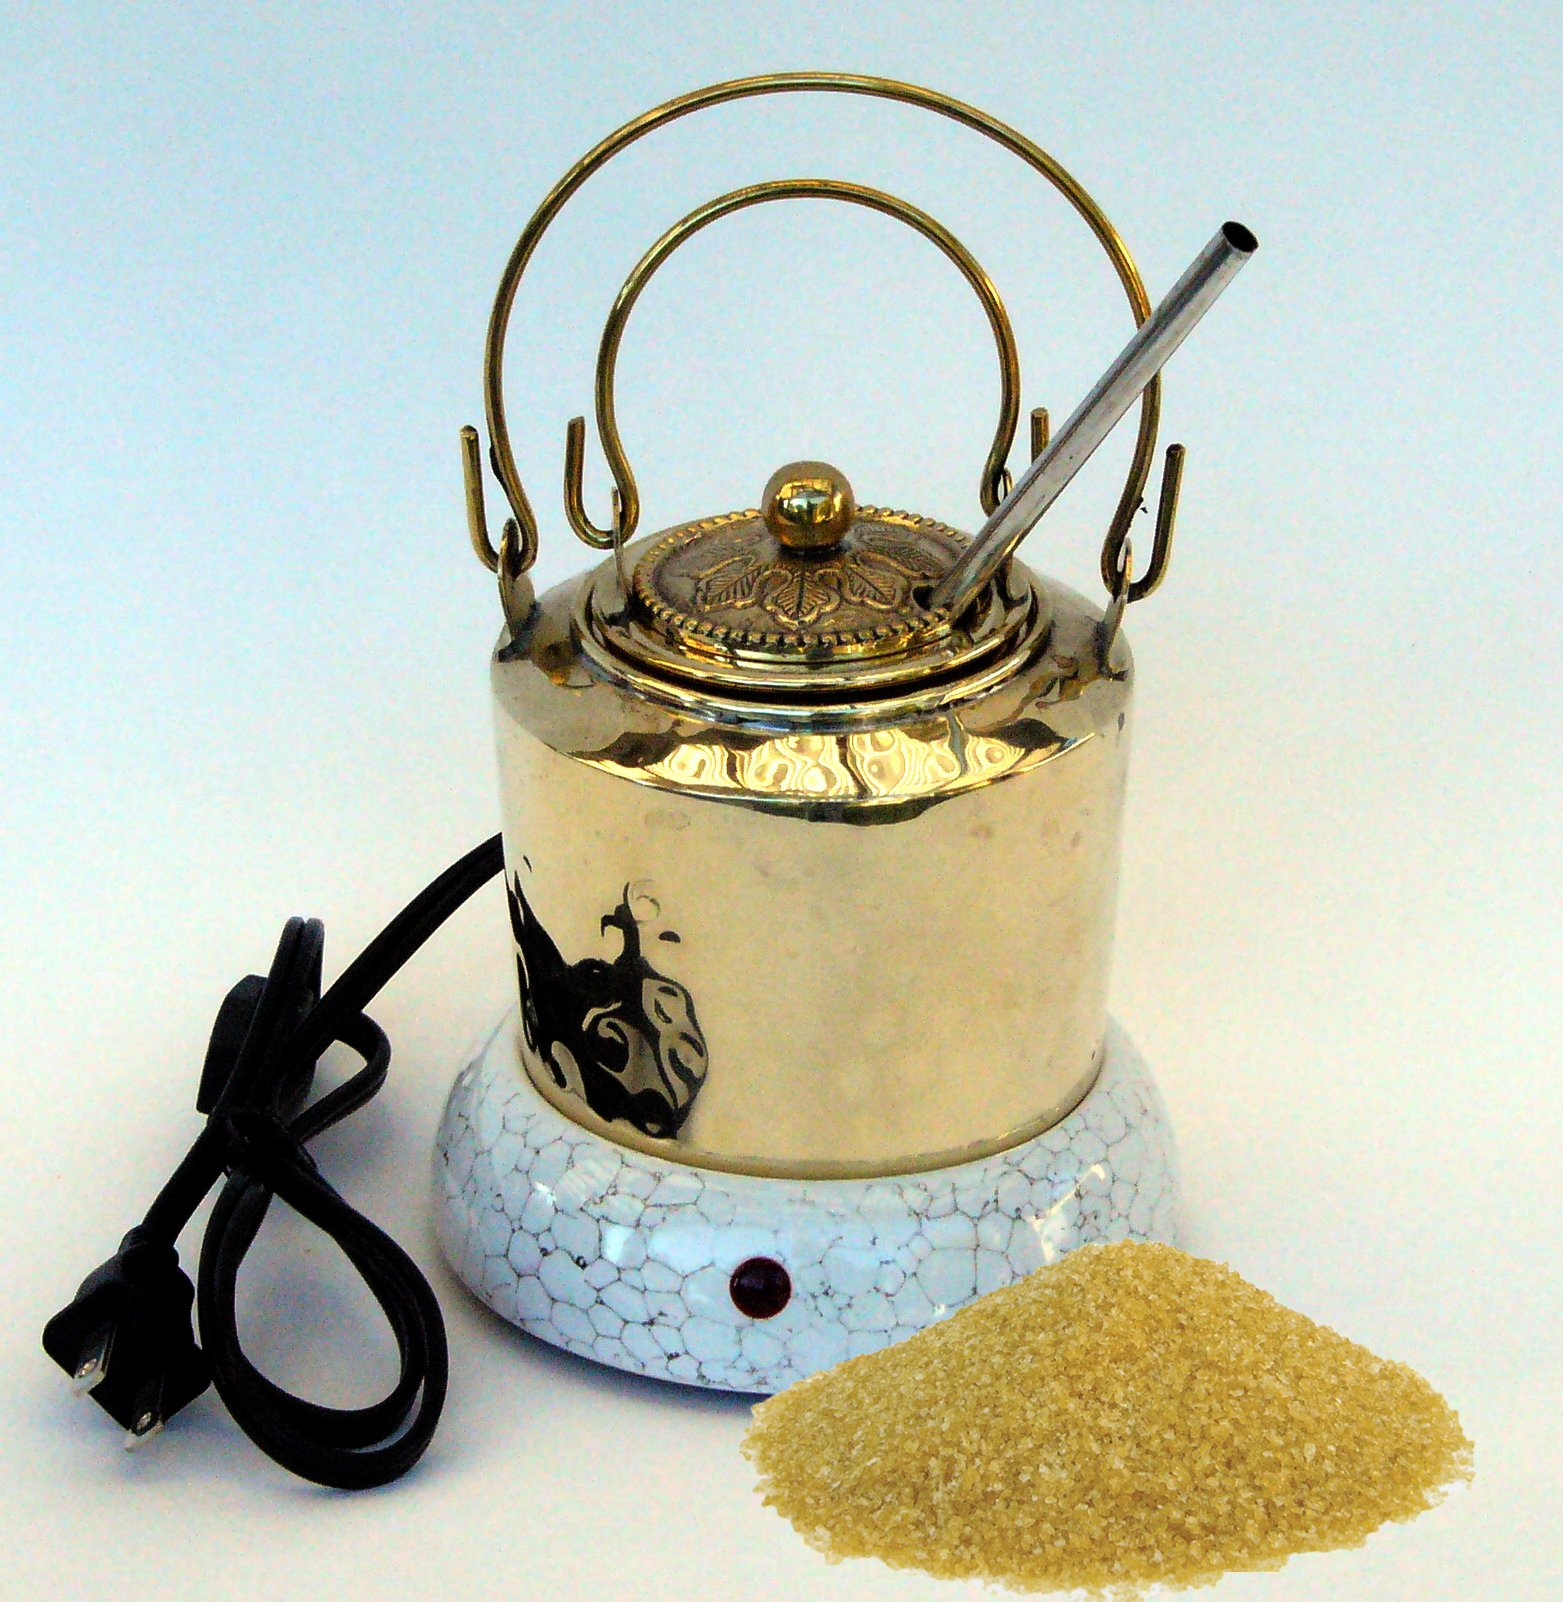 Hot Glue Pot Combo - Hand Made Brass Pot for Hide Glue, Electric Warmer and 1/2 Pound of Hide Glue